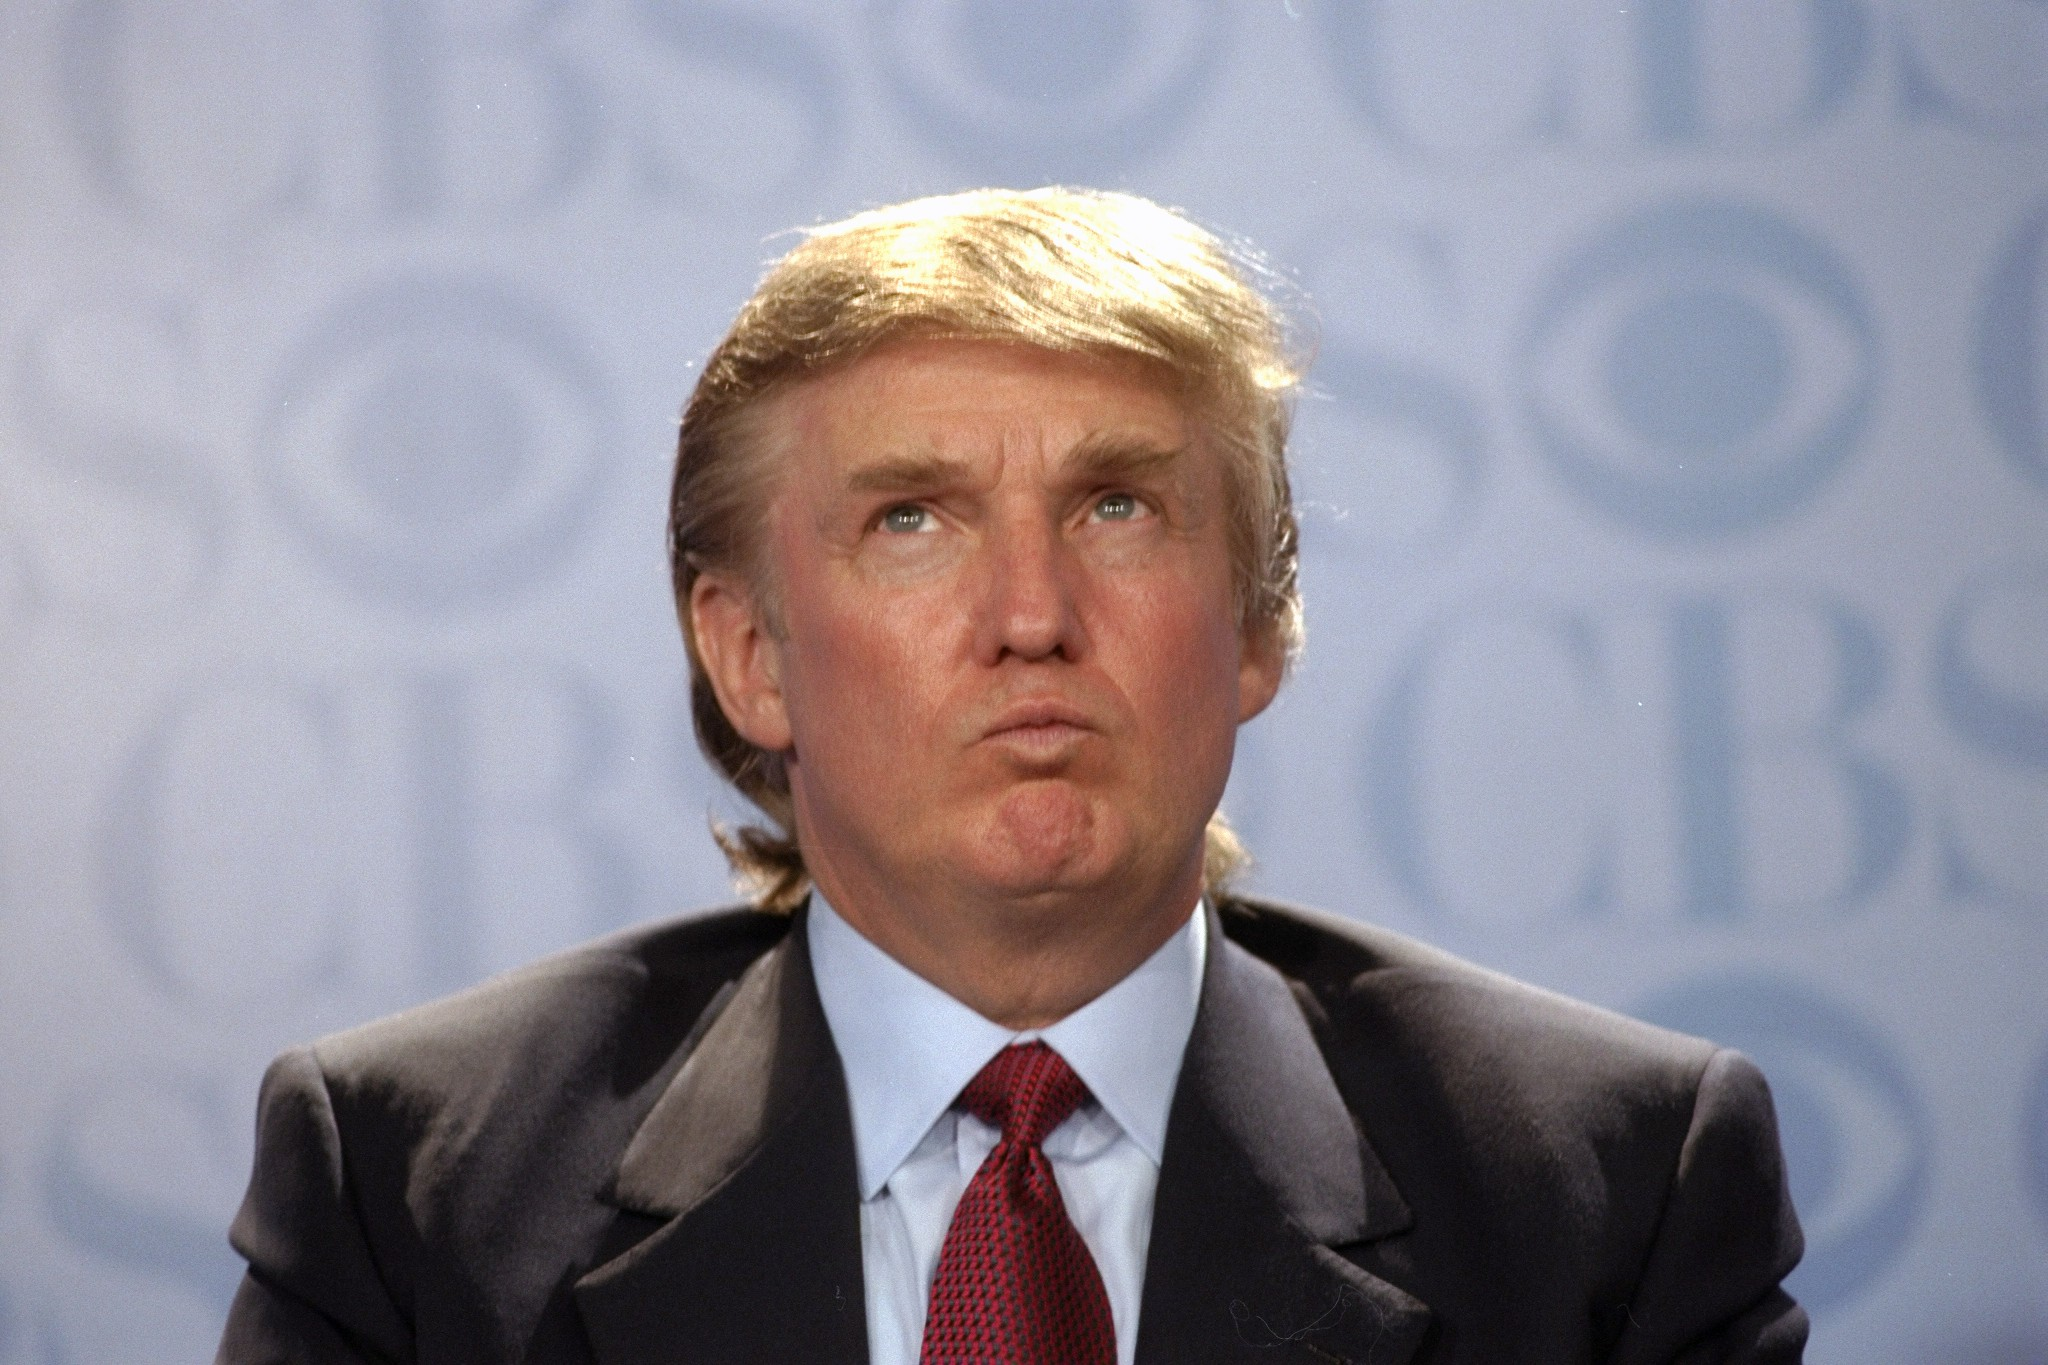 Is Donald Trump Spray Tan Or Tanning Bed